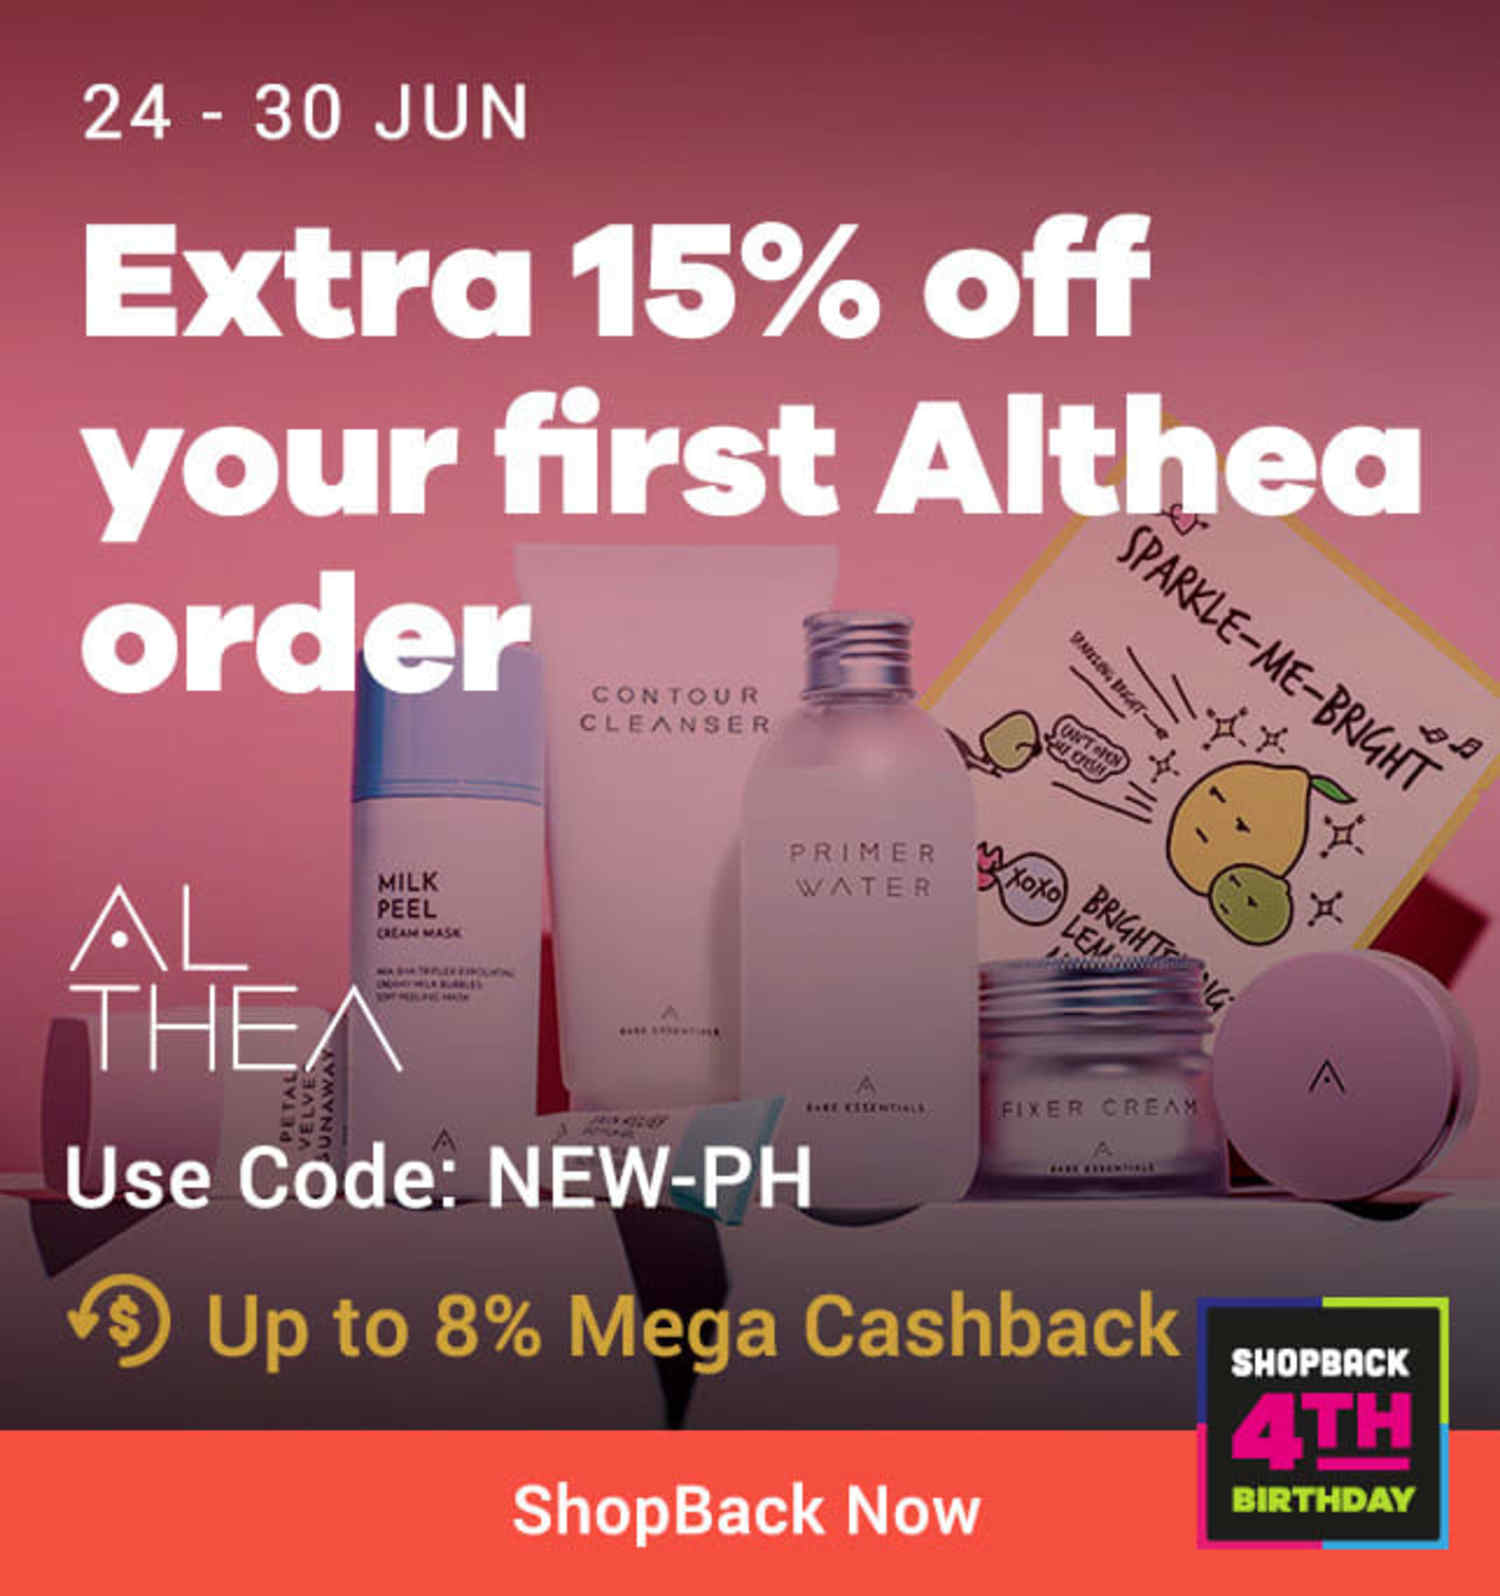 Althea Extra 15% off your first Althea order | Use code NEW-PH Up to 8% Mega Cashback (was <7%)